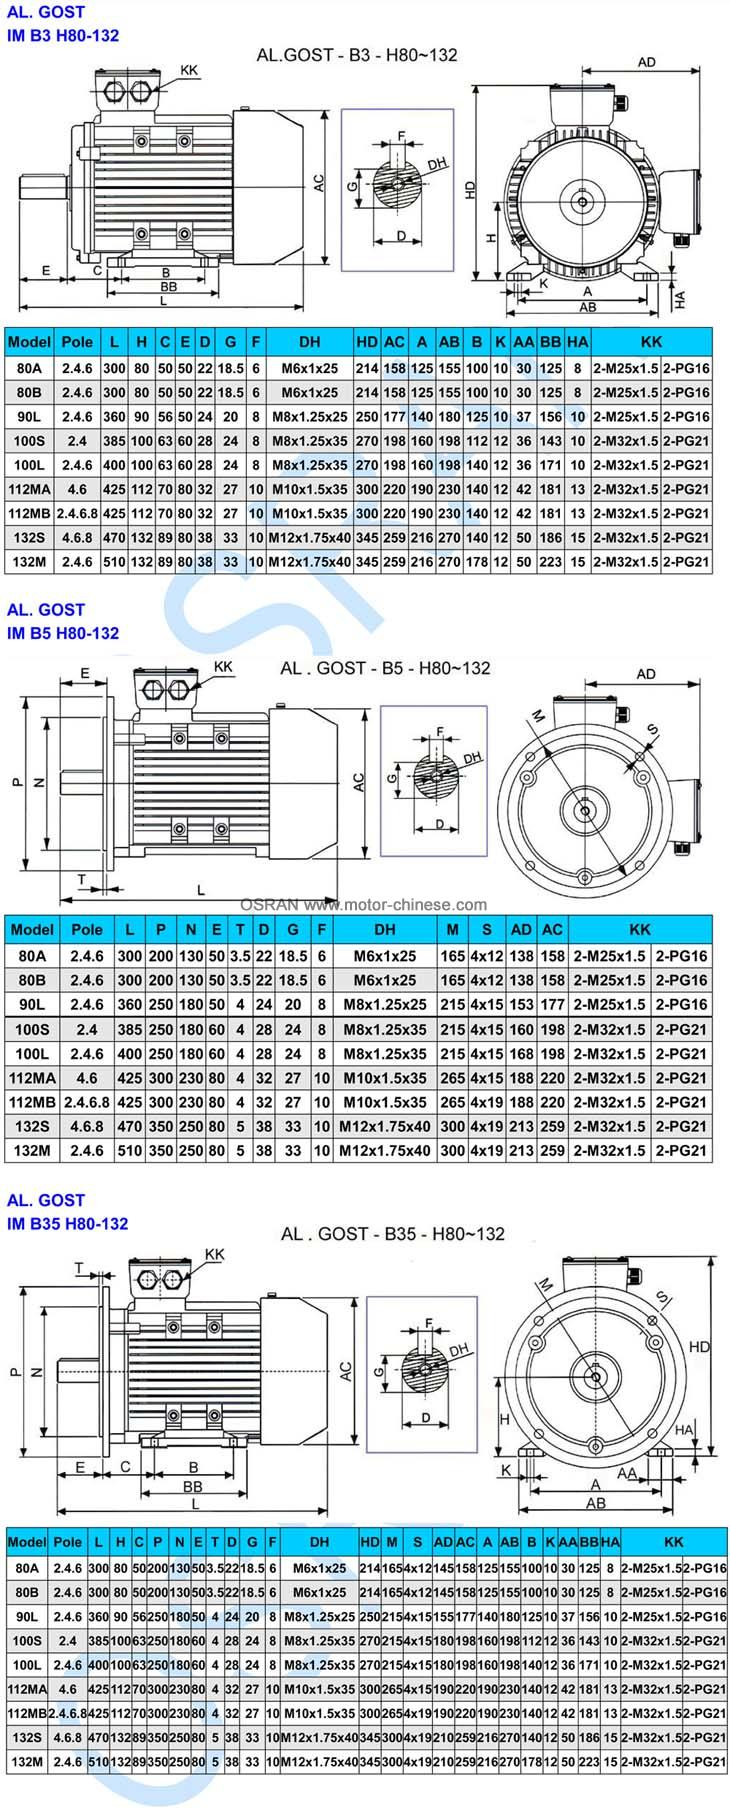 B3-B5-B35 mounting sizes of AL GOST electric motor